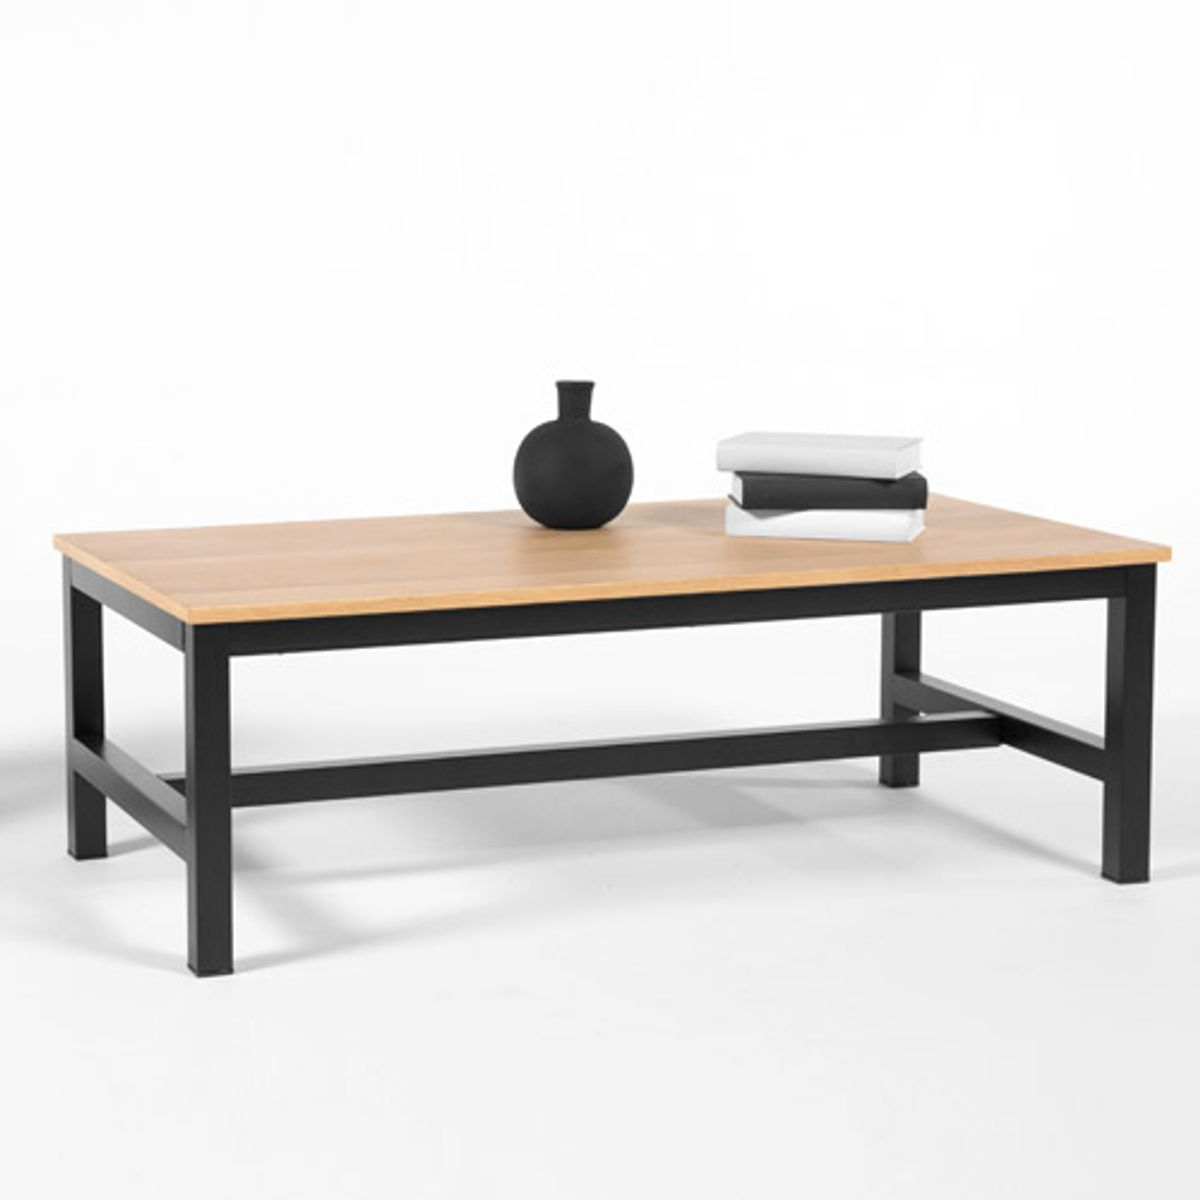 table basse avec plateau en ch ne et pied m tal robson. Black Bedroom Furniture Sets. Home Design Ideas